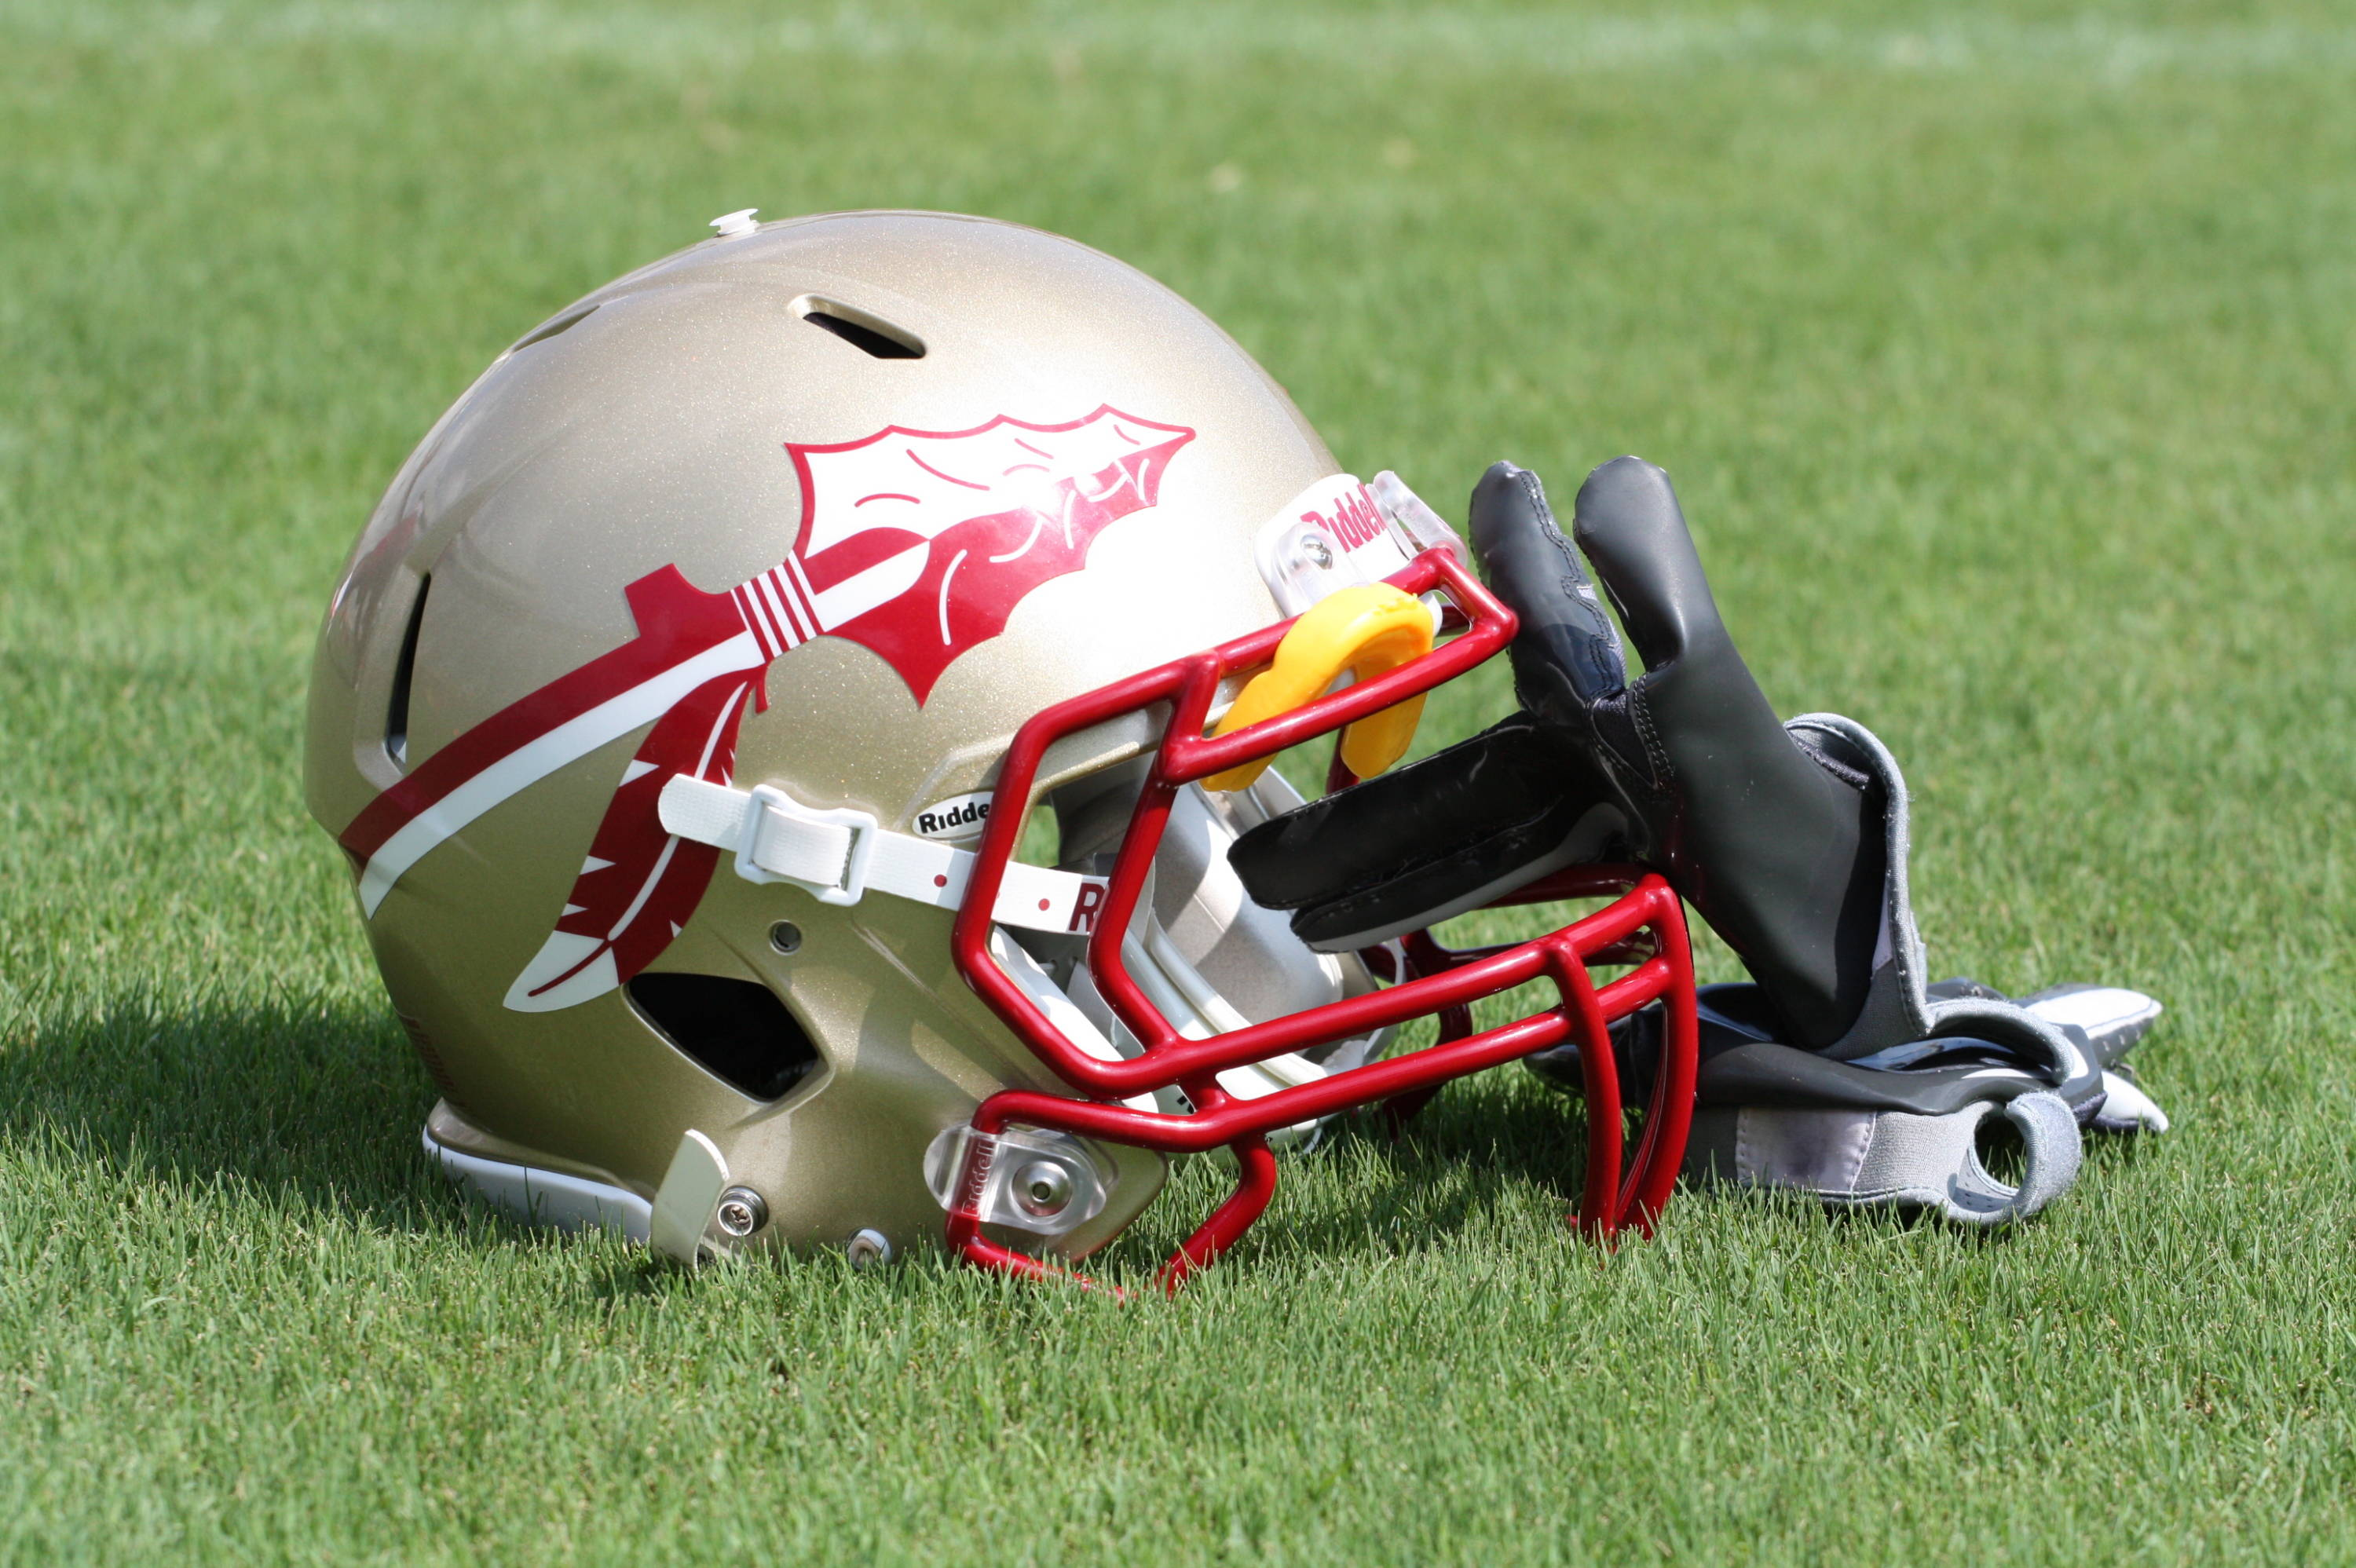 The Florida State helmet